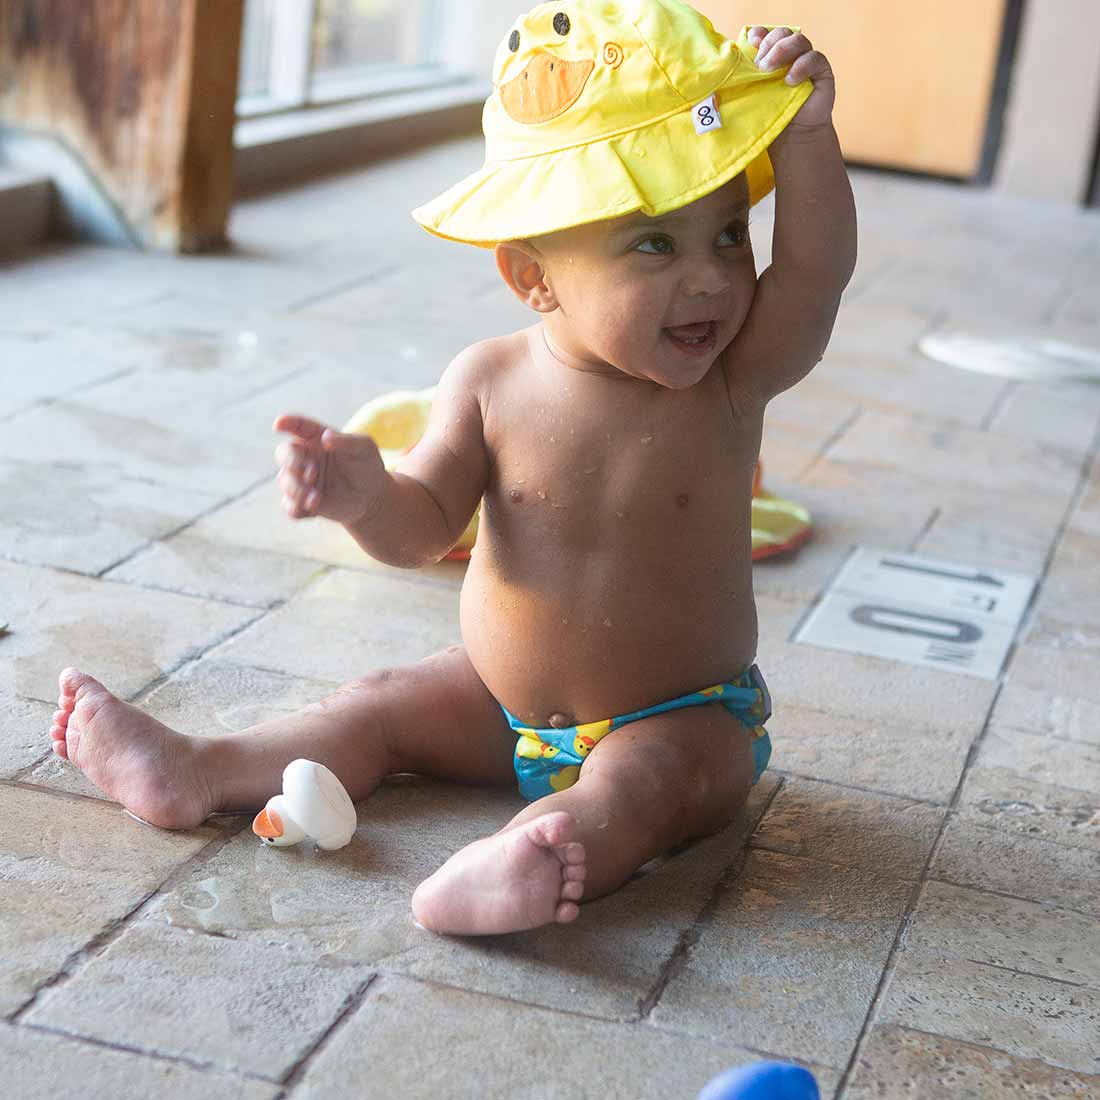 ZOOCCHINI UPF50+ Baby Swim Diaper & Sun Hat Set - Puddles the Duck